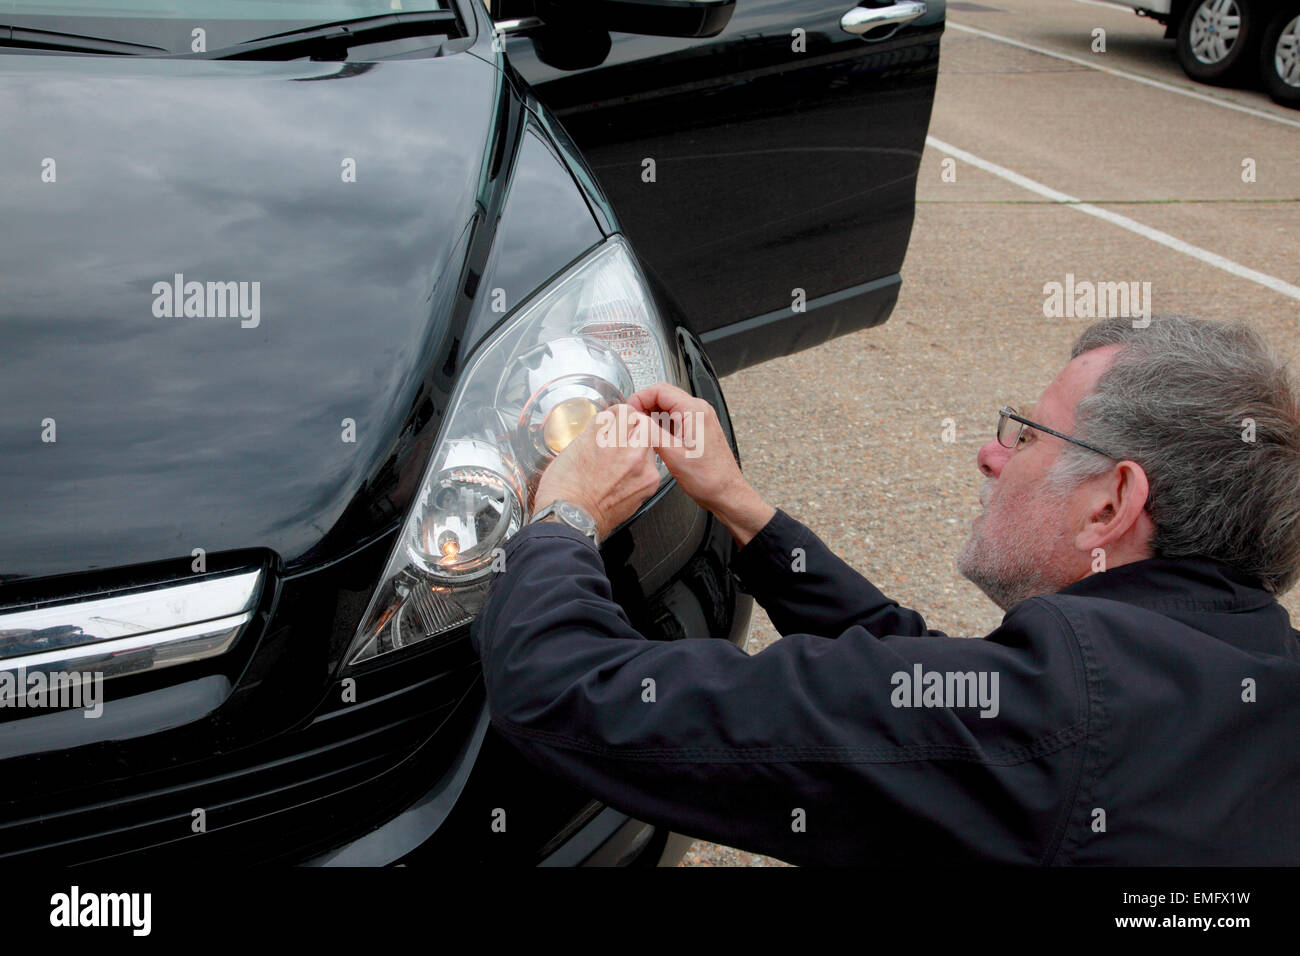 A man fitting headlamp beam adaptors on to the headlights of a car - Stock Image